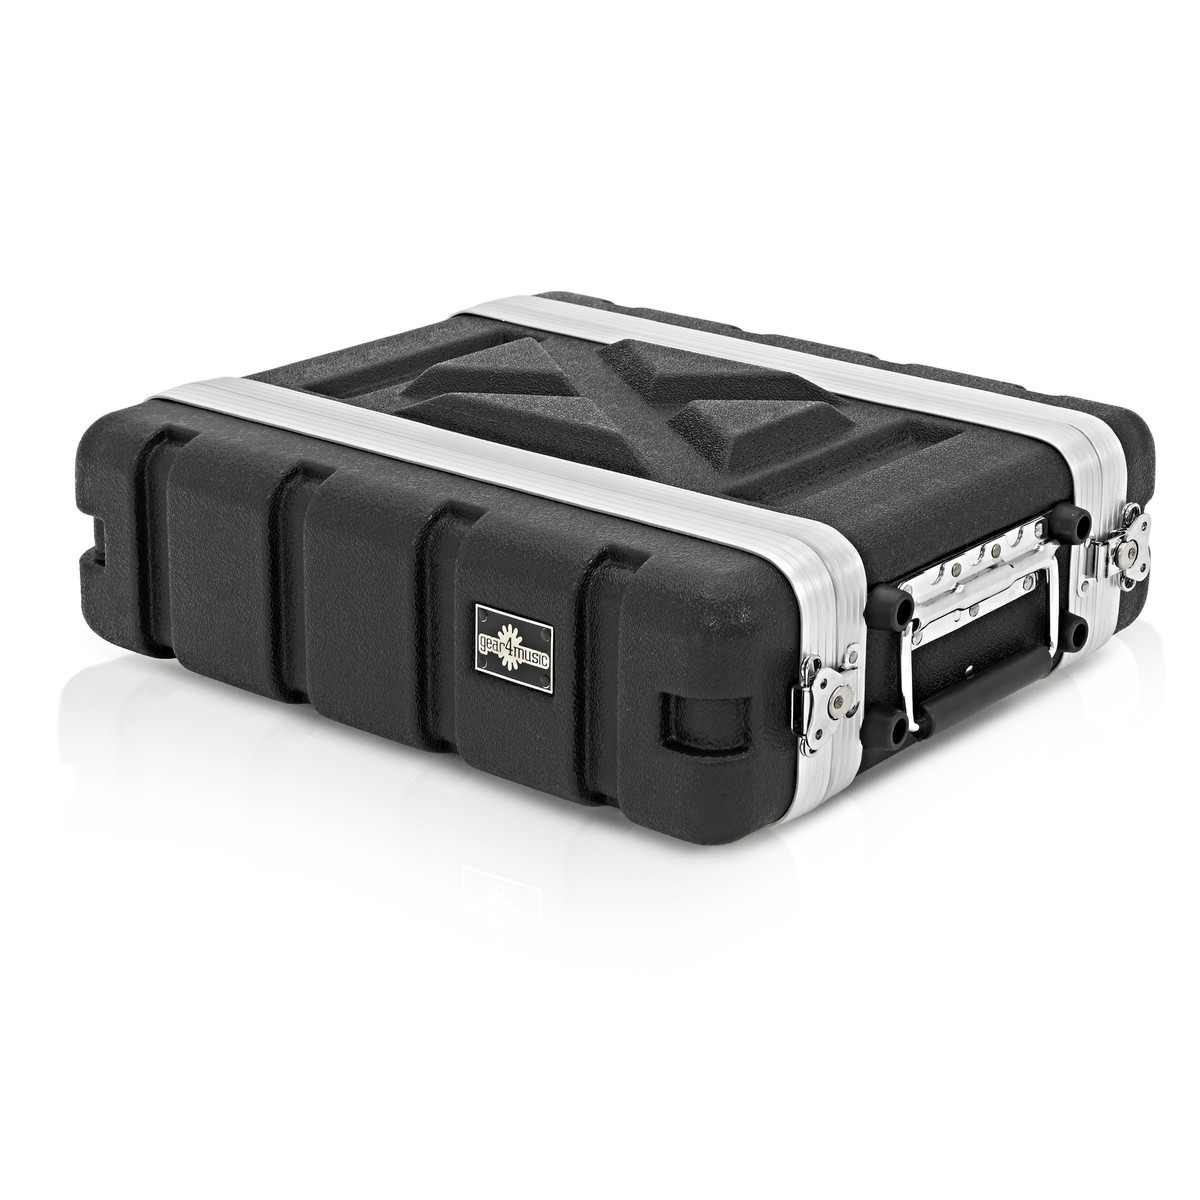 Image of 2U Shallow Rack Case by Gear4music